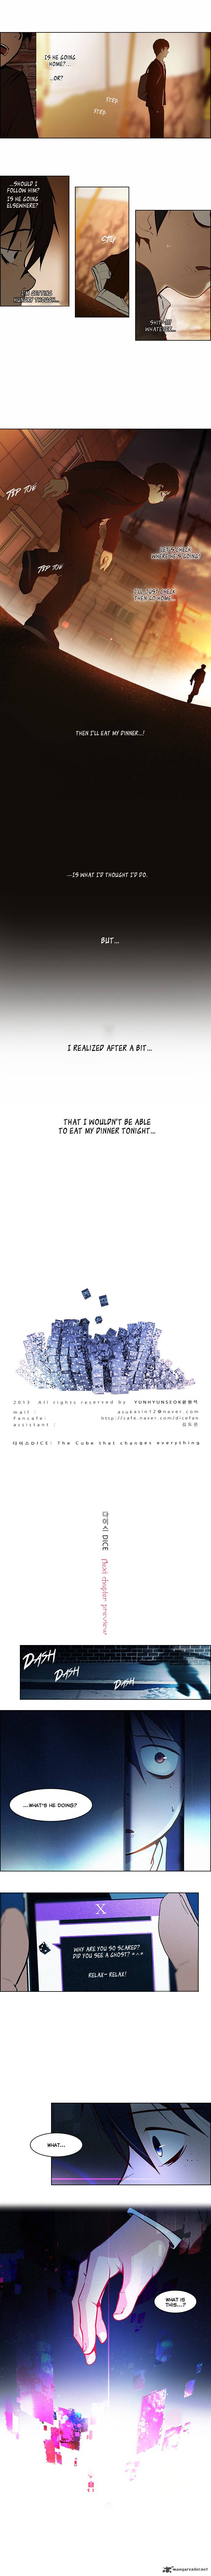 dice_the_cube_that_changes_everything_3_6